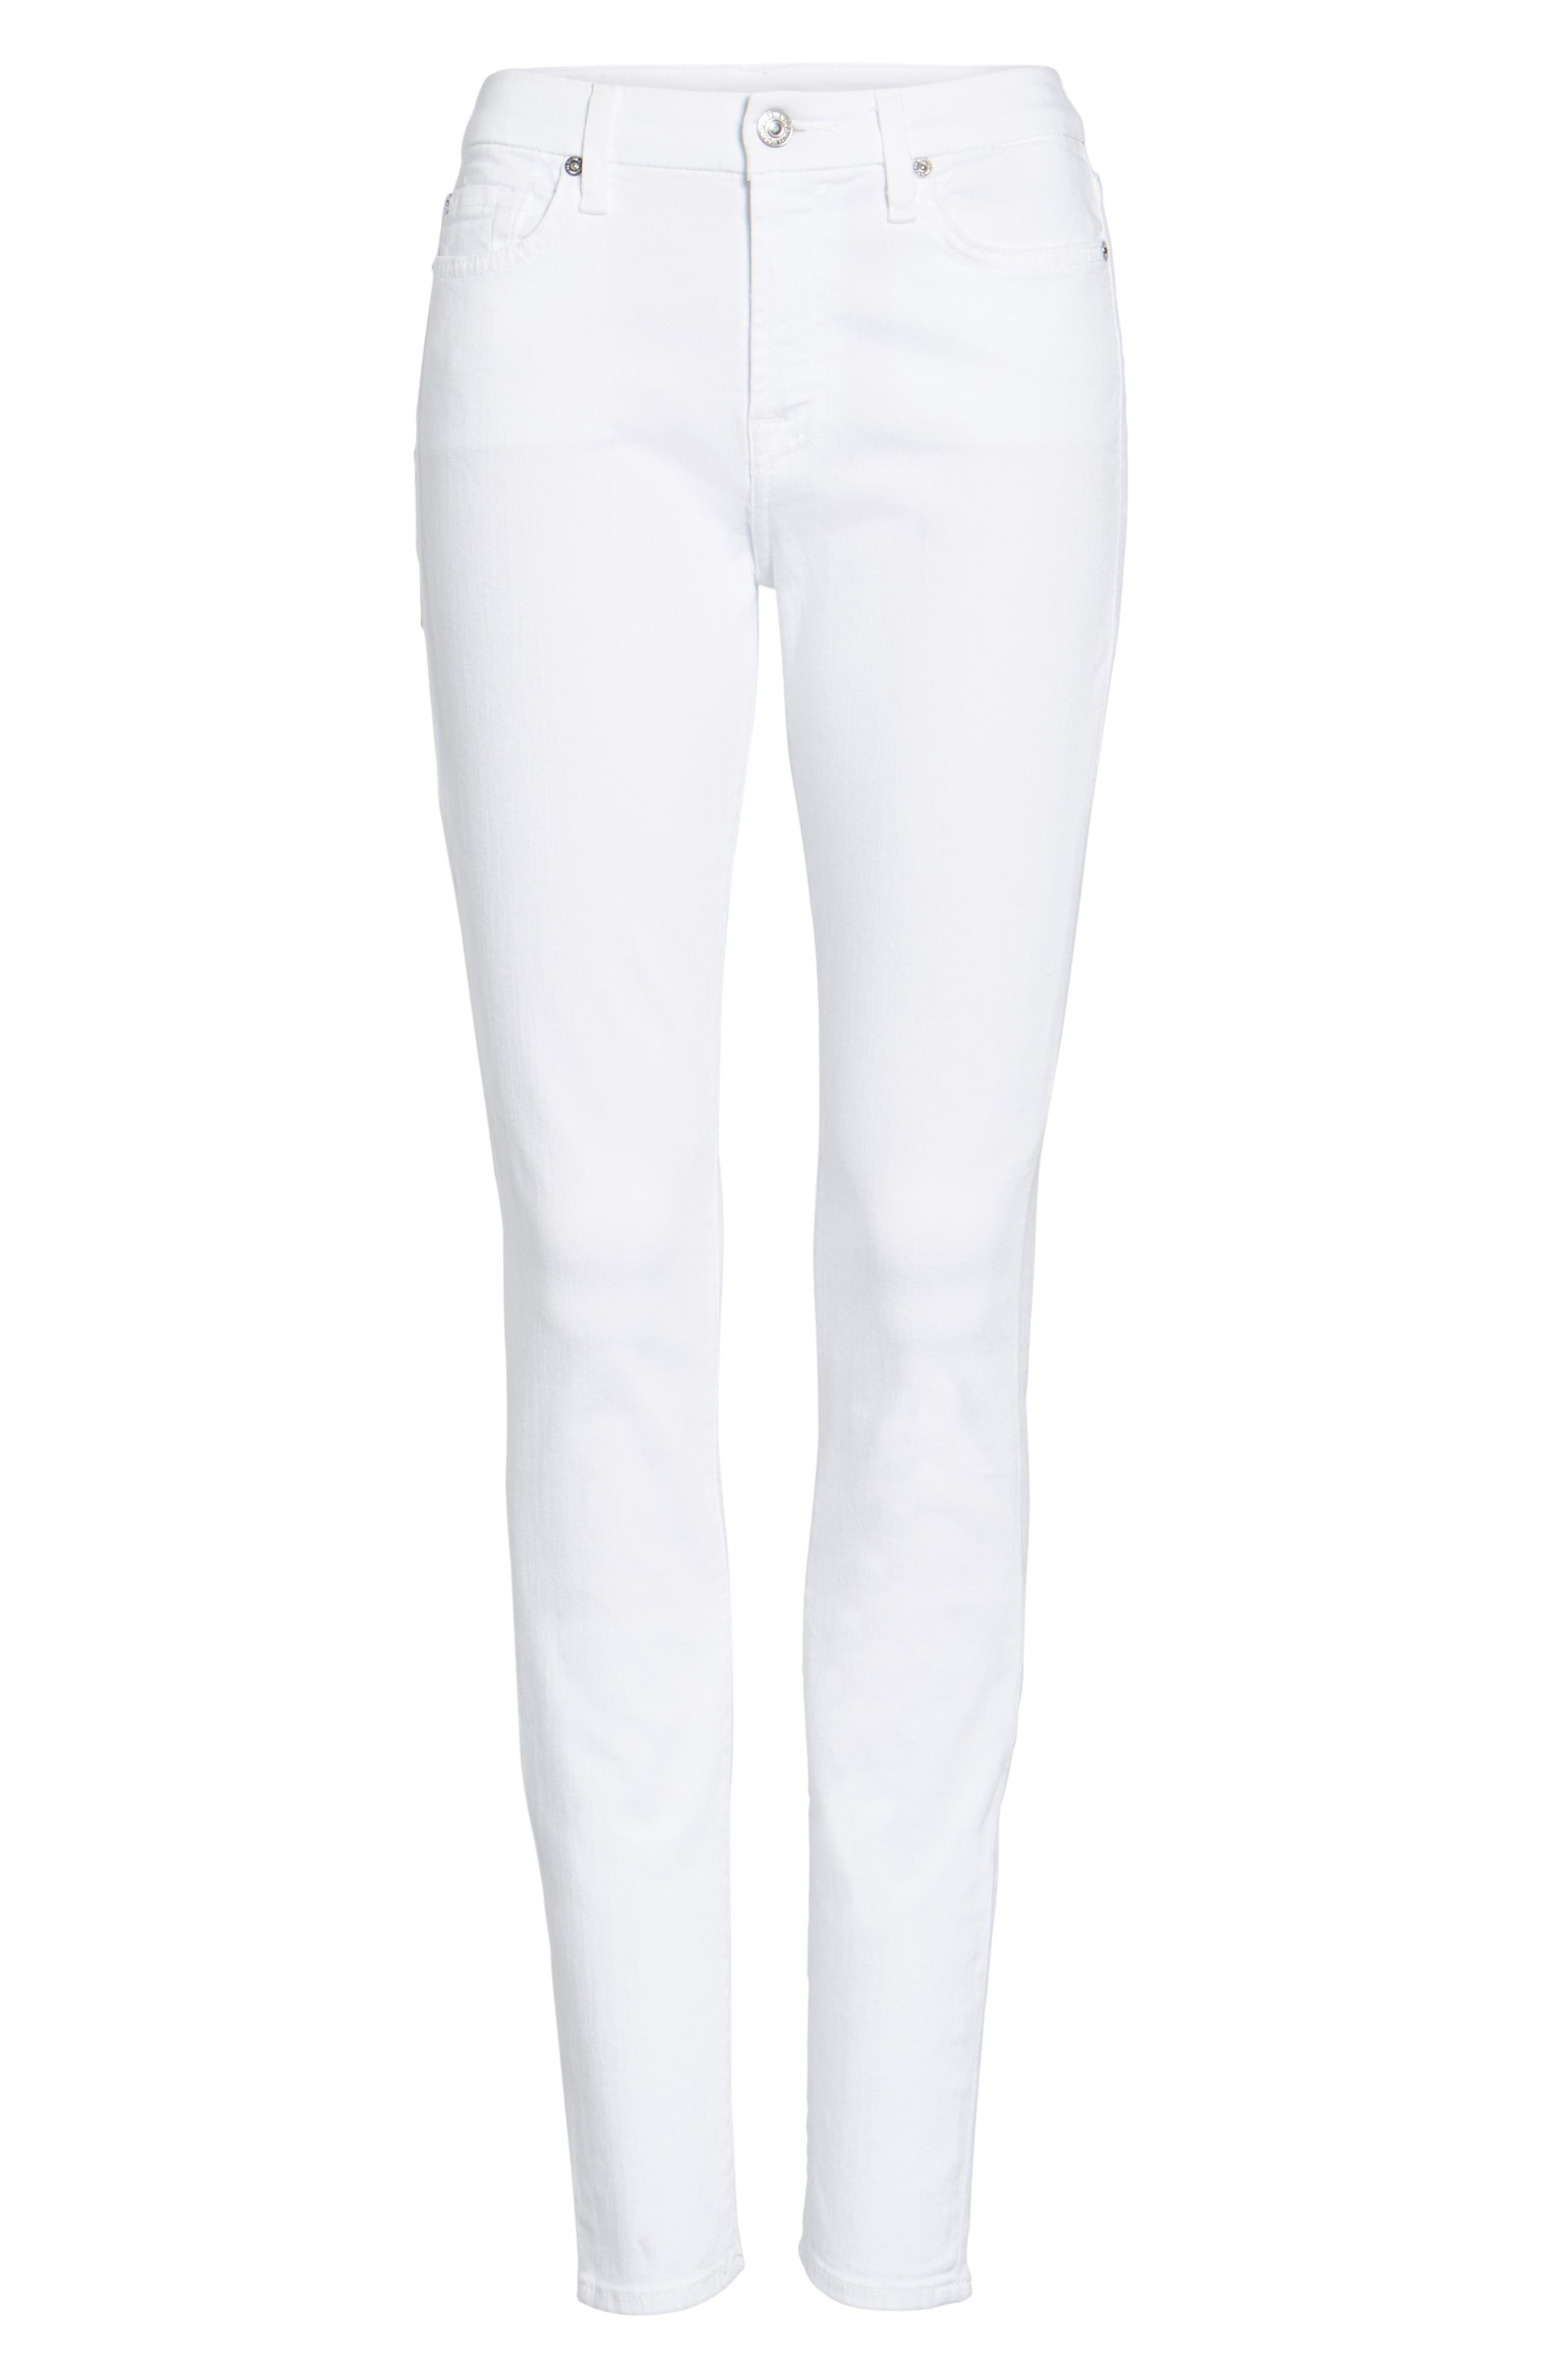 'The Skinny' Skinny Jeans,                         Main,                         color, 101